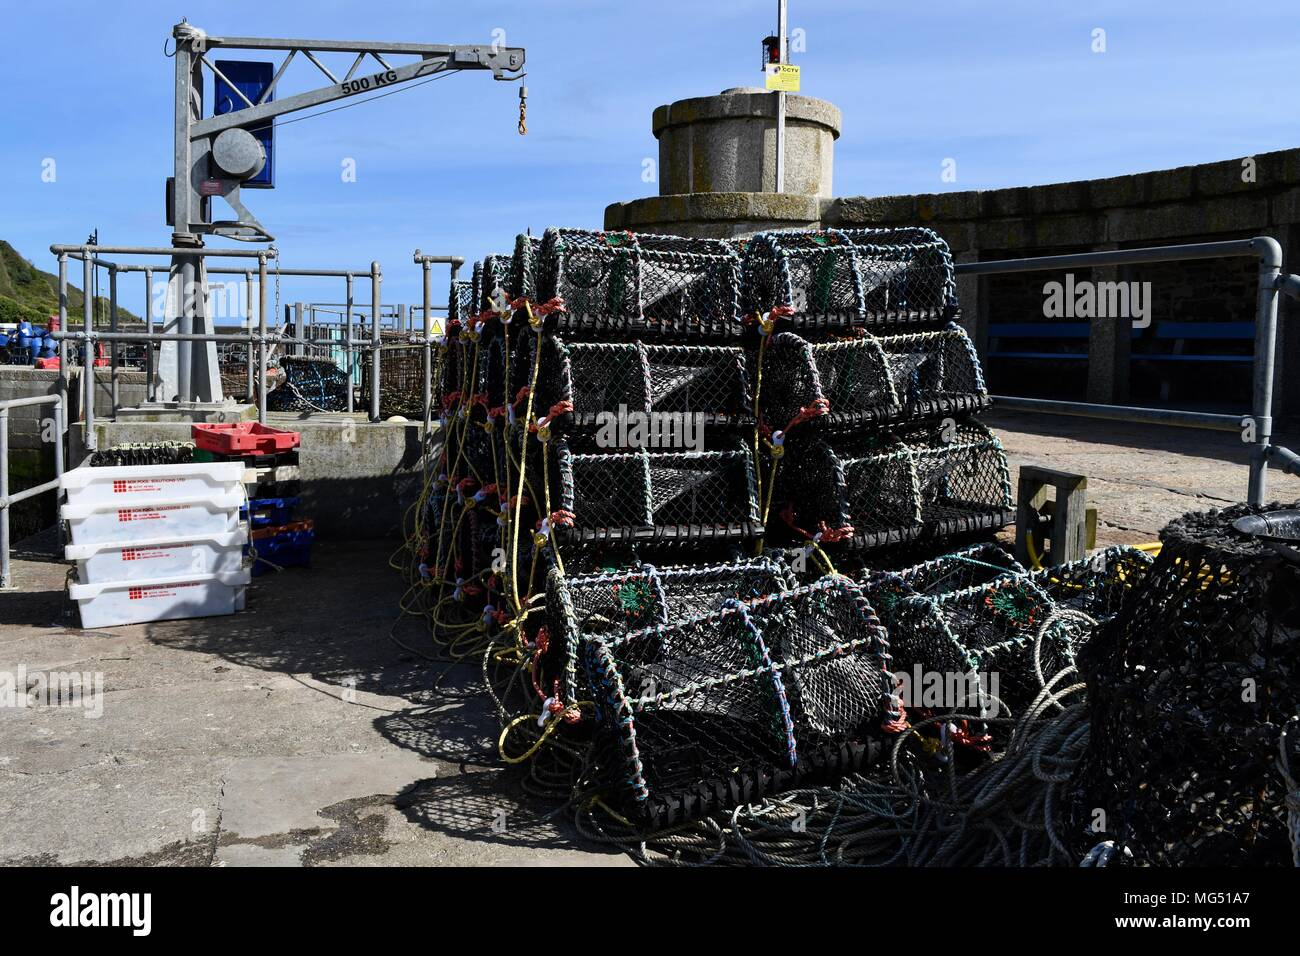 Lobster cages piled up in Newquay harbour - Stock Image